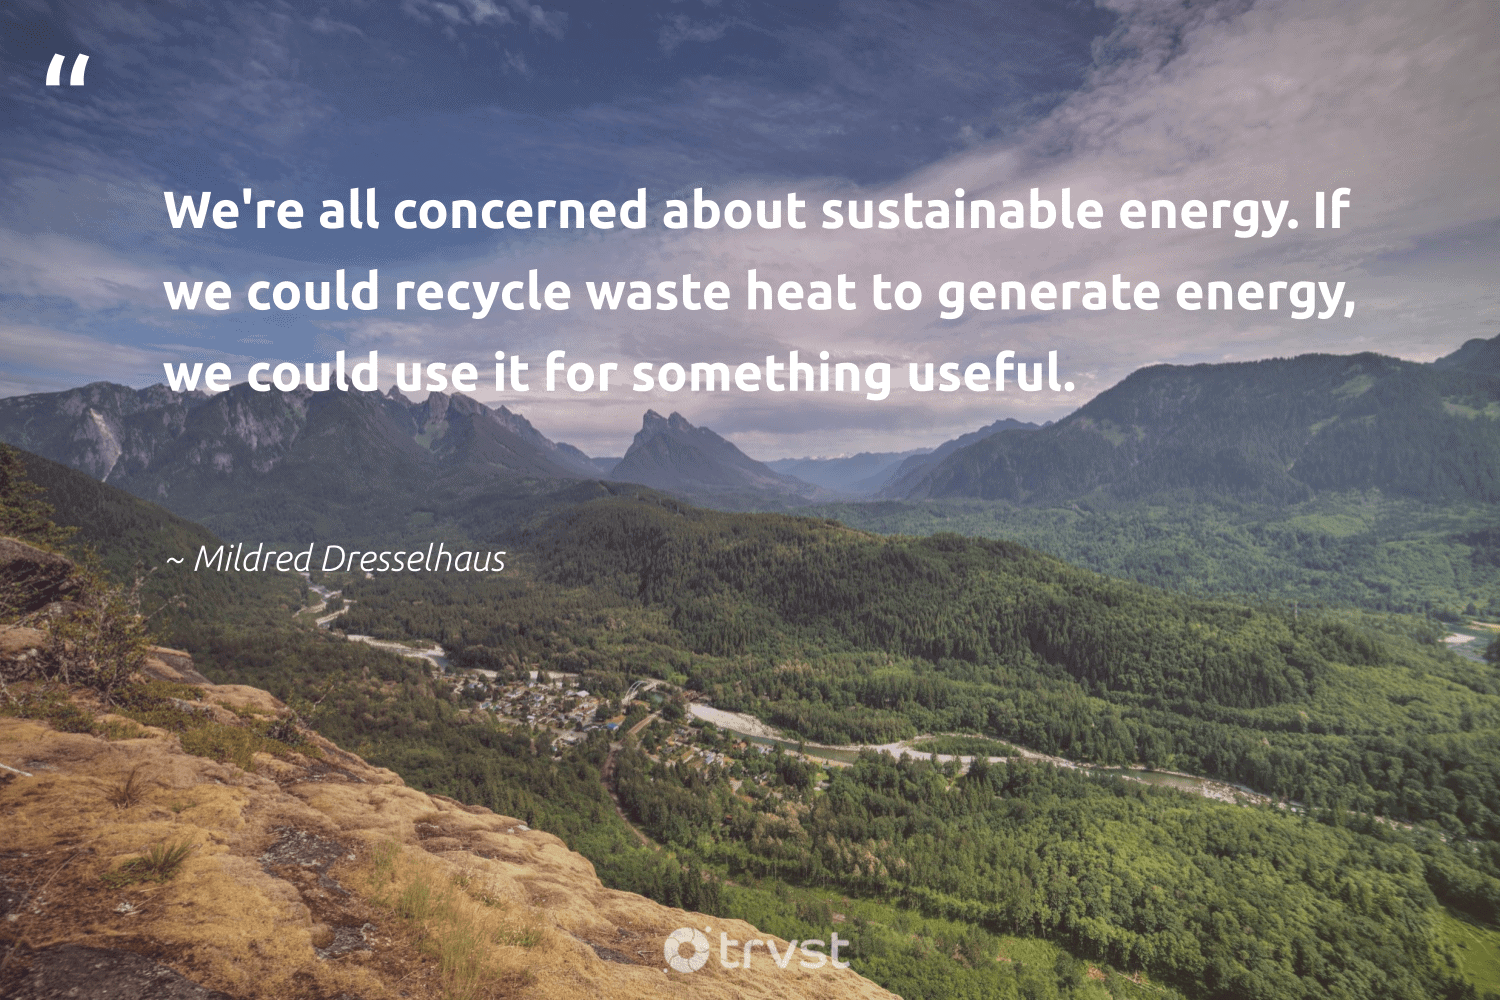 """""""We're all concerned about sustainable energy. If we could recycle waste heat to generate energy, we could use it for something useful.""""  - Mildred Dresselhaus #trvst #quotes #recycling #sustainable #waste #recycle #energy #reuse #savetheplanet #sustainability #socialchange #refurbished"""